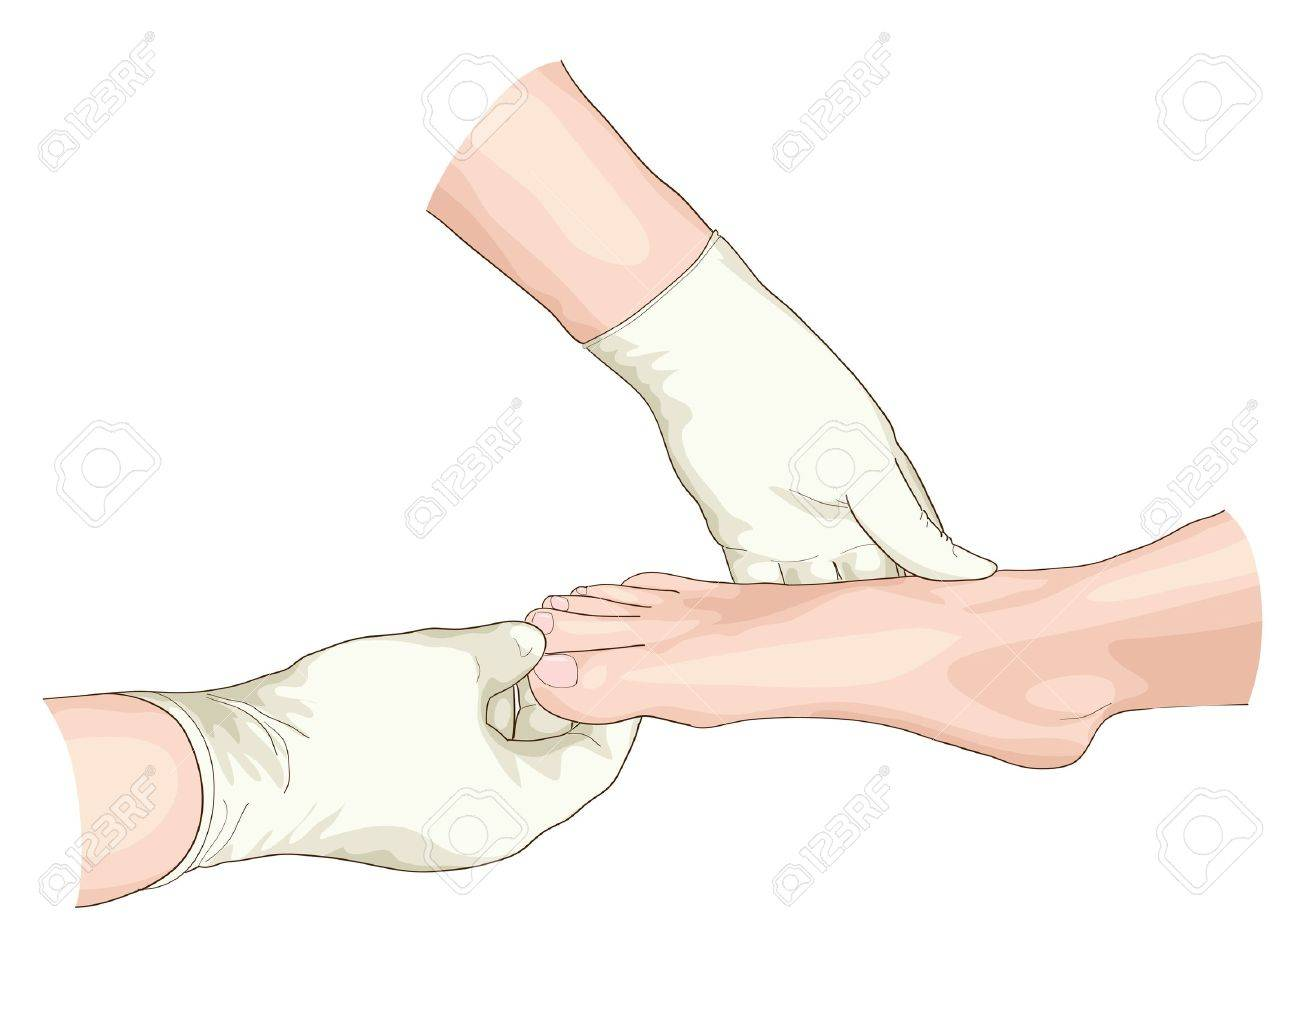 Examination of the foot. Vector illustration. Stock Vector - 18756911